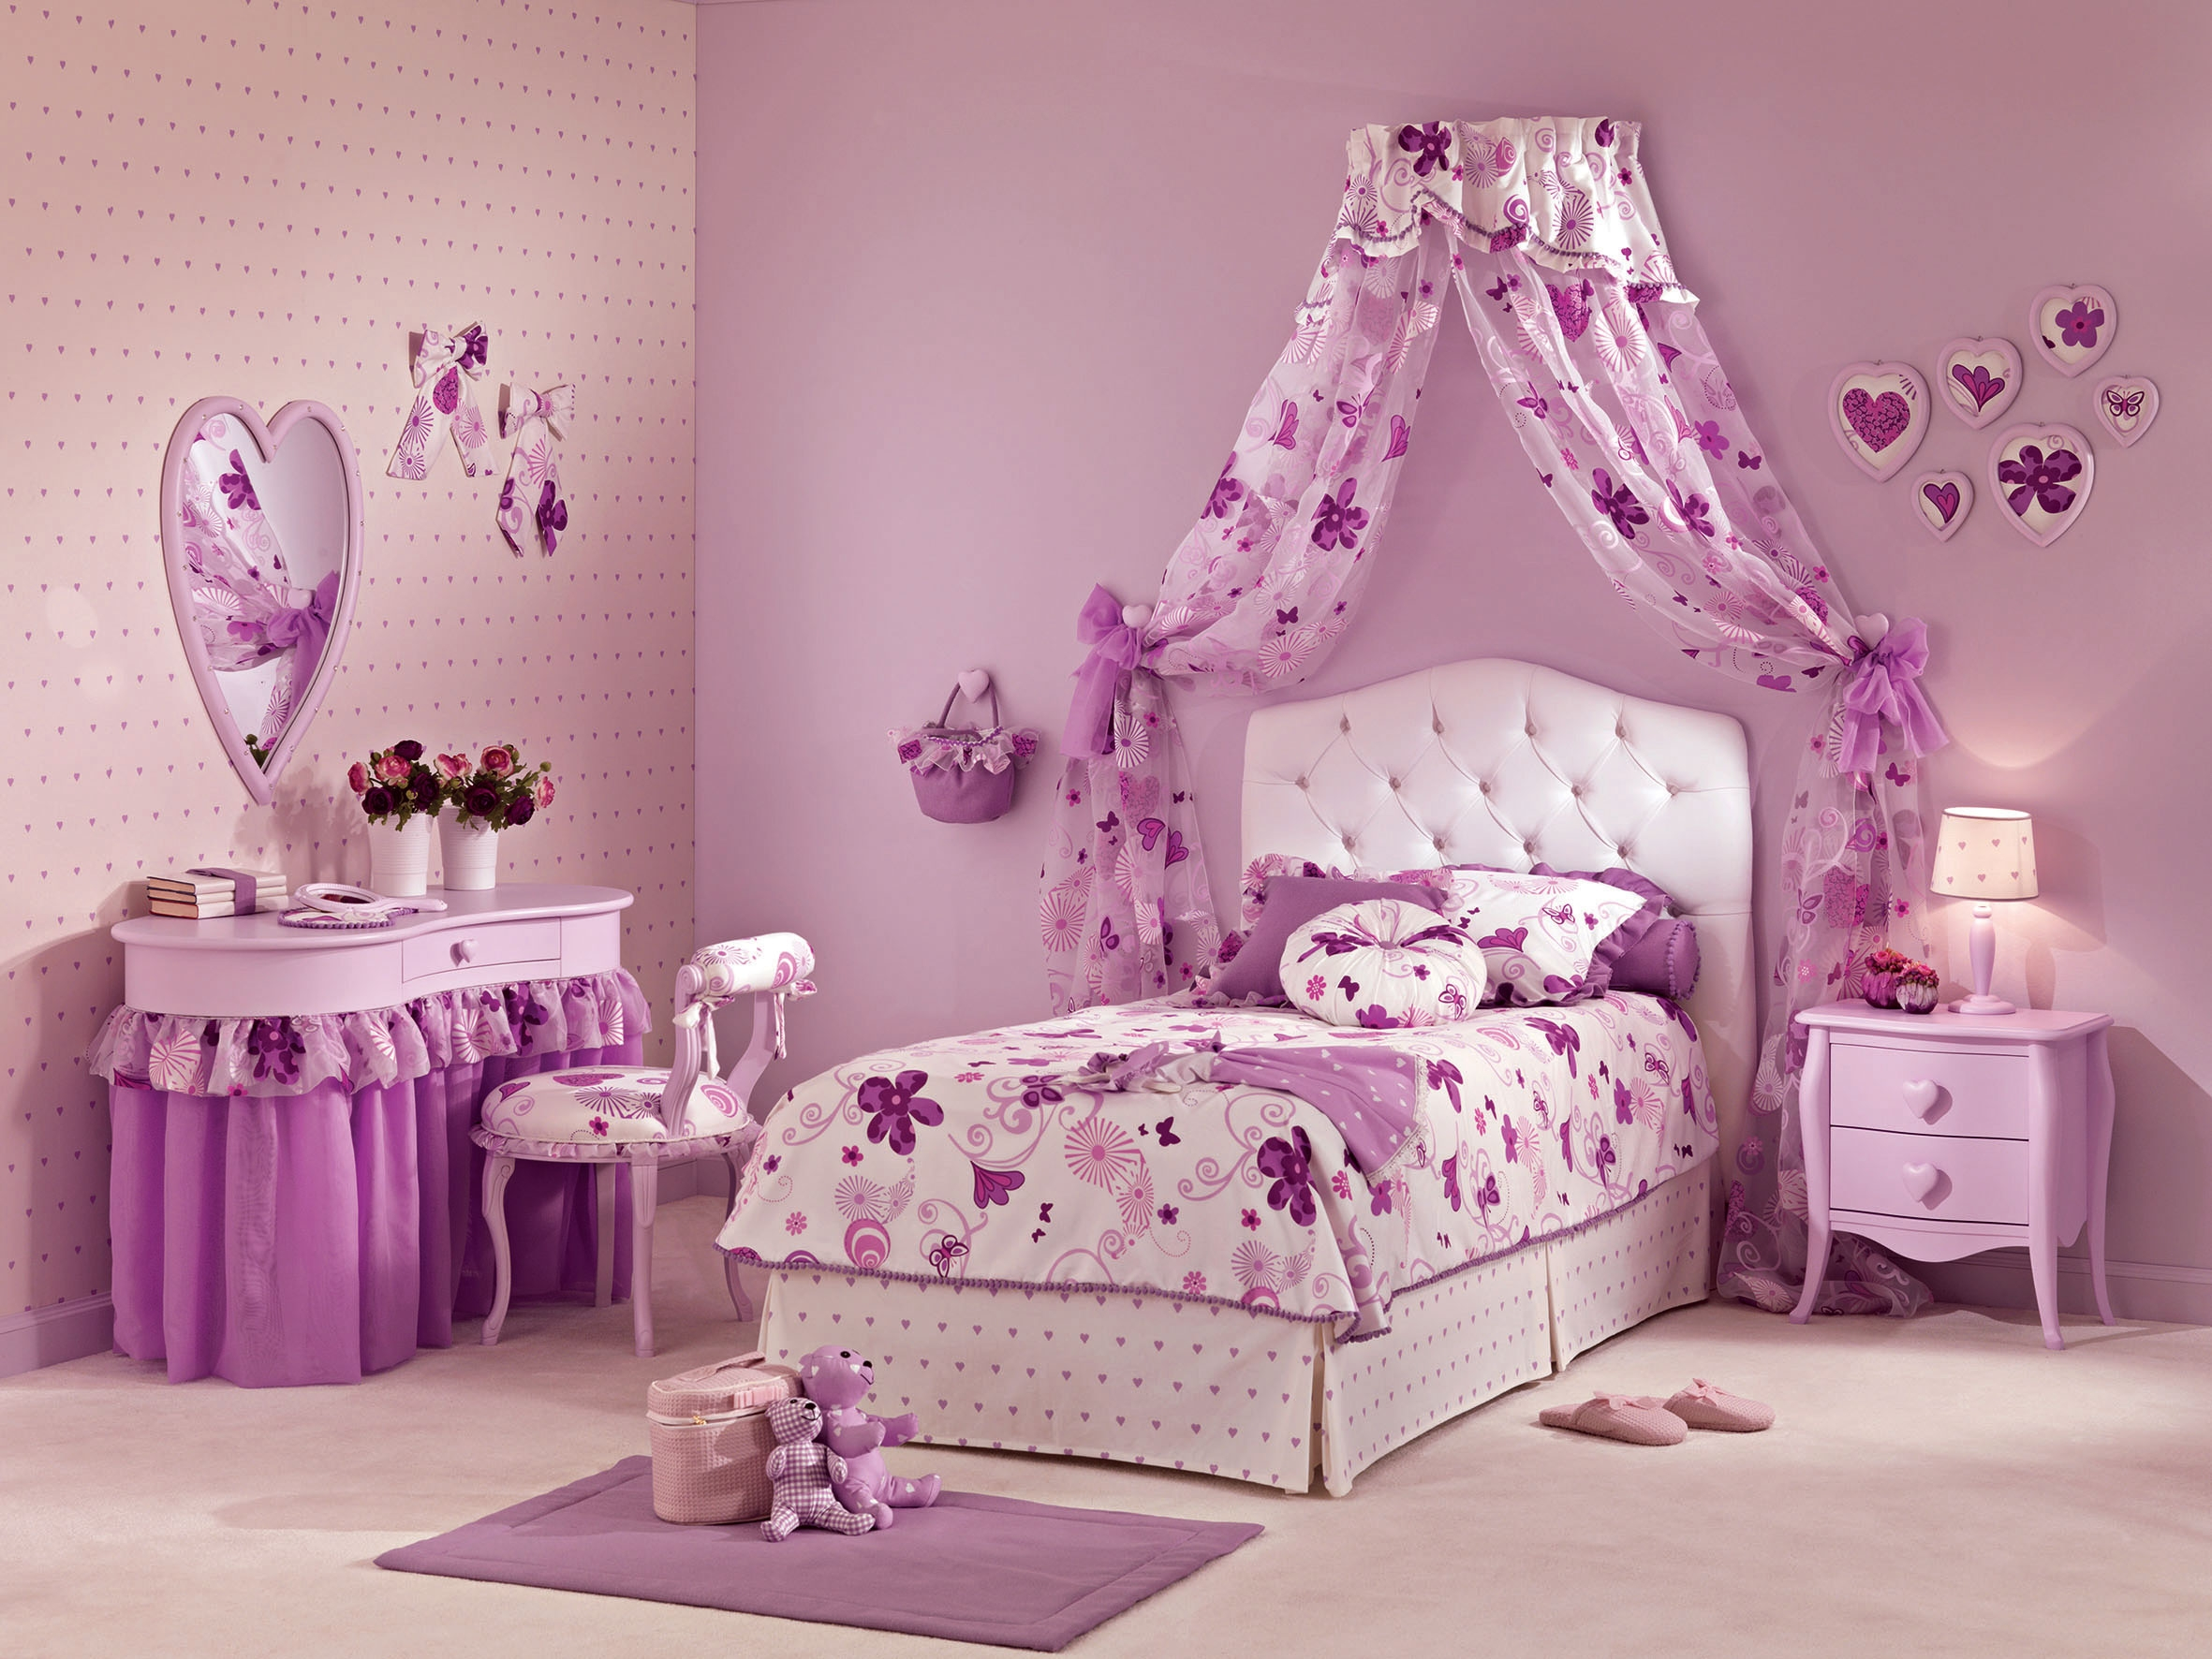 modele chambre bebe fille. Black Bedroom Furniture Sets. Home Design Ideas